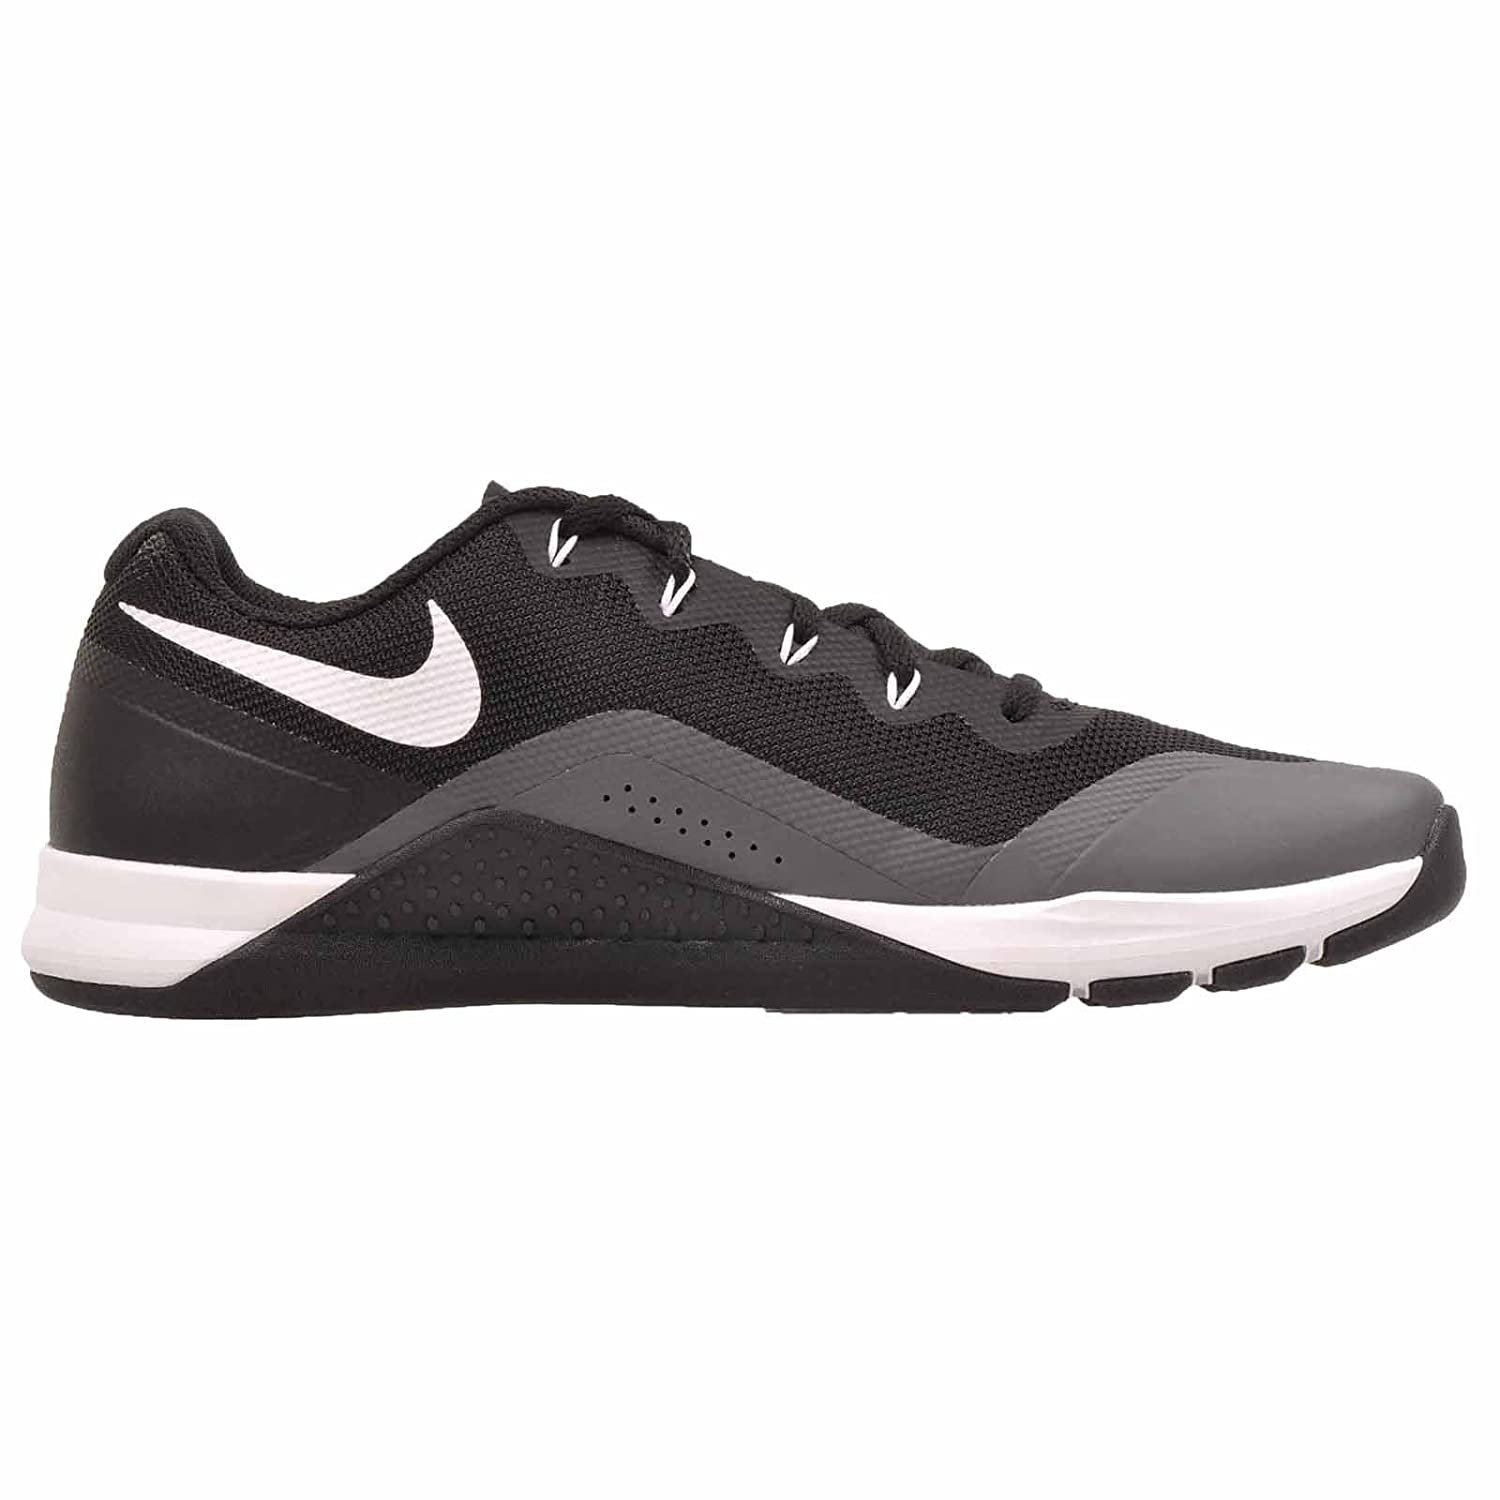 NIKE Women's Metcon B01LPPTM5W Repper DSX Cross Trainer B01LPPTM5W Metcon 5 B(M) US|Black/White/Dark Grey 1 339771